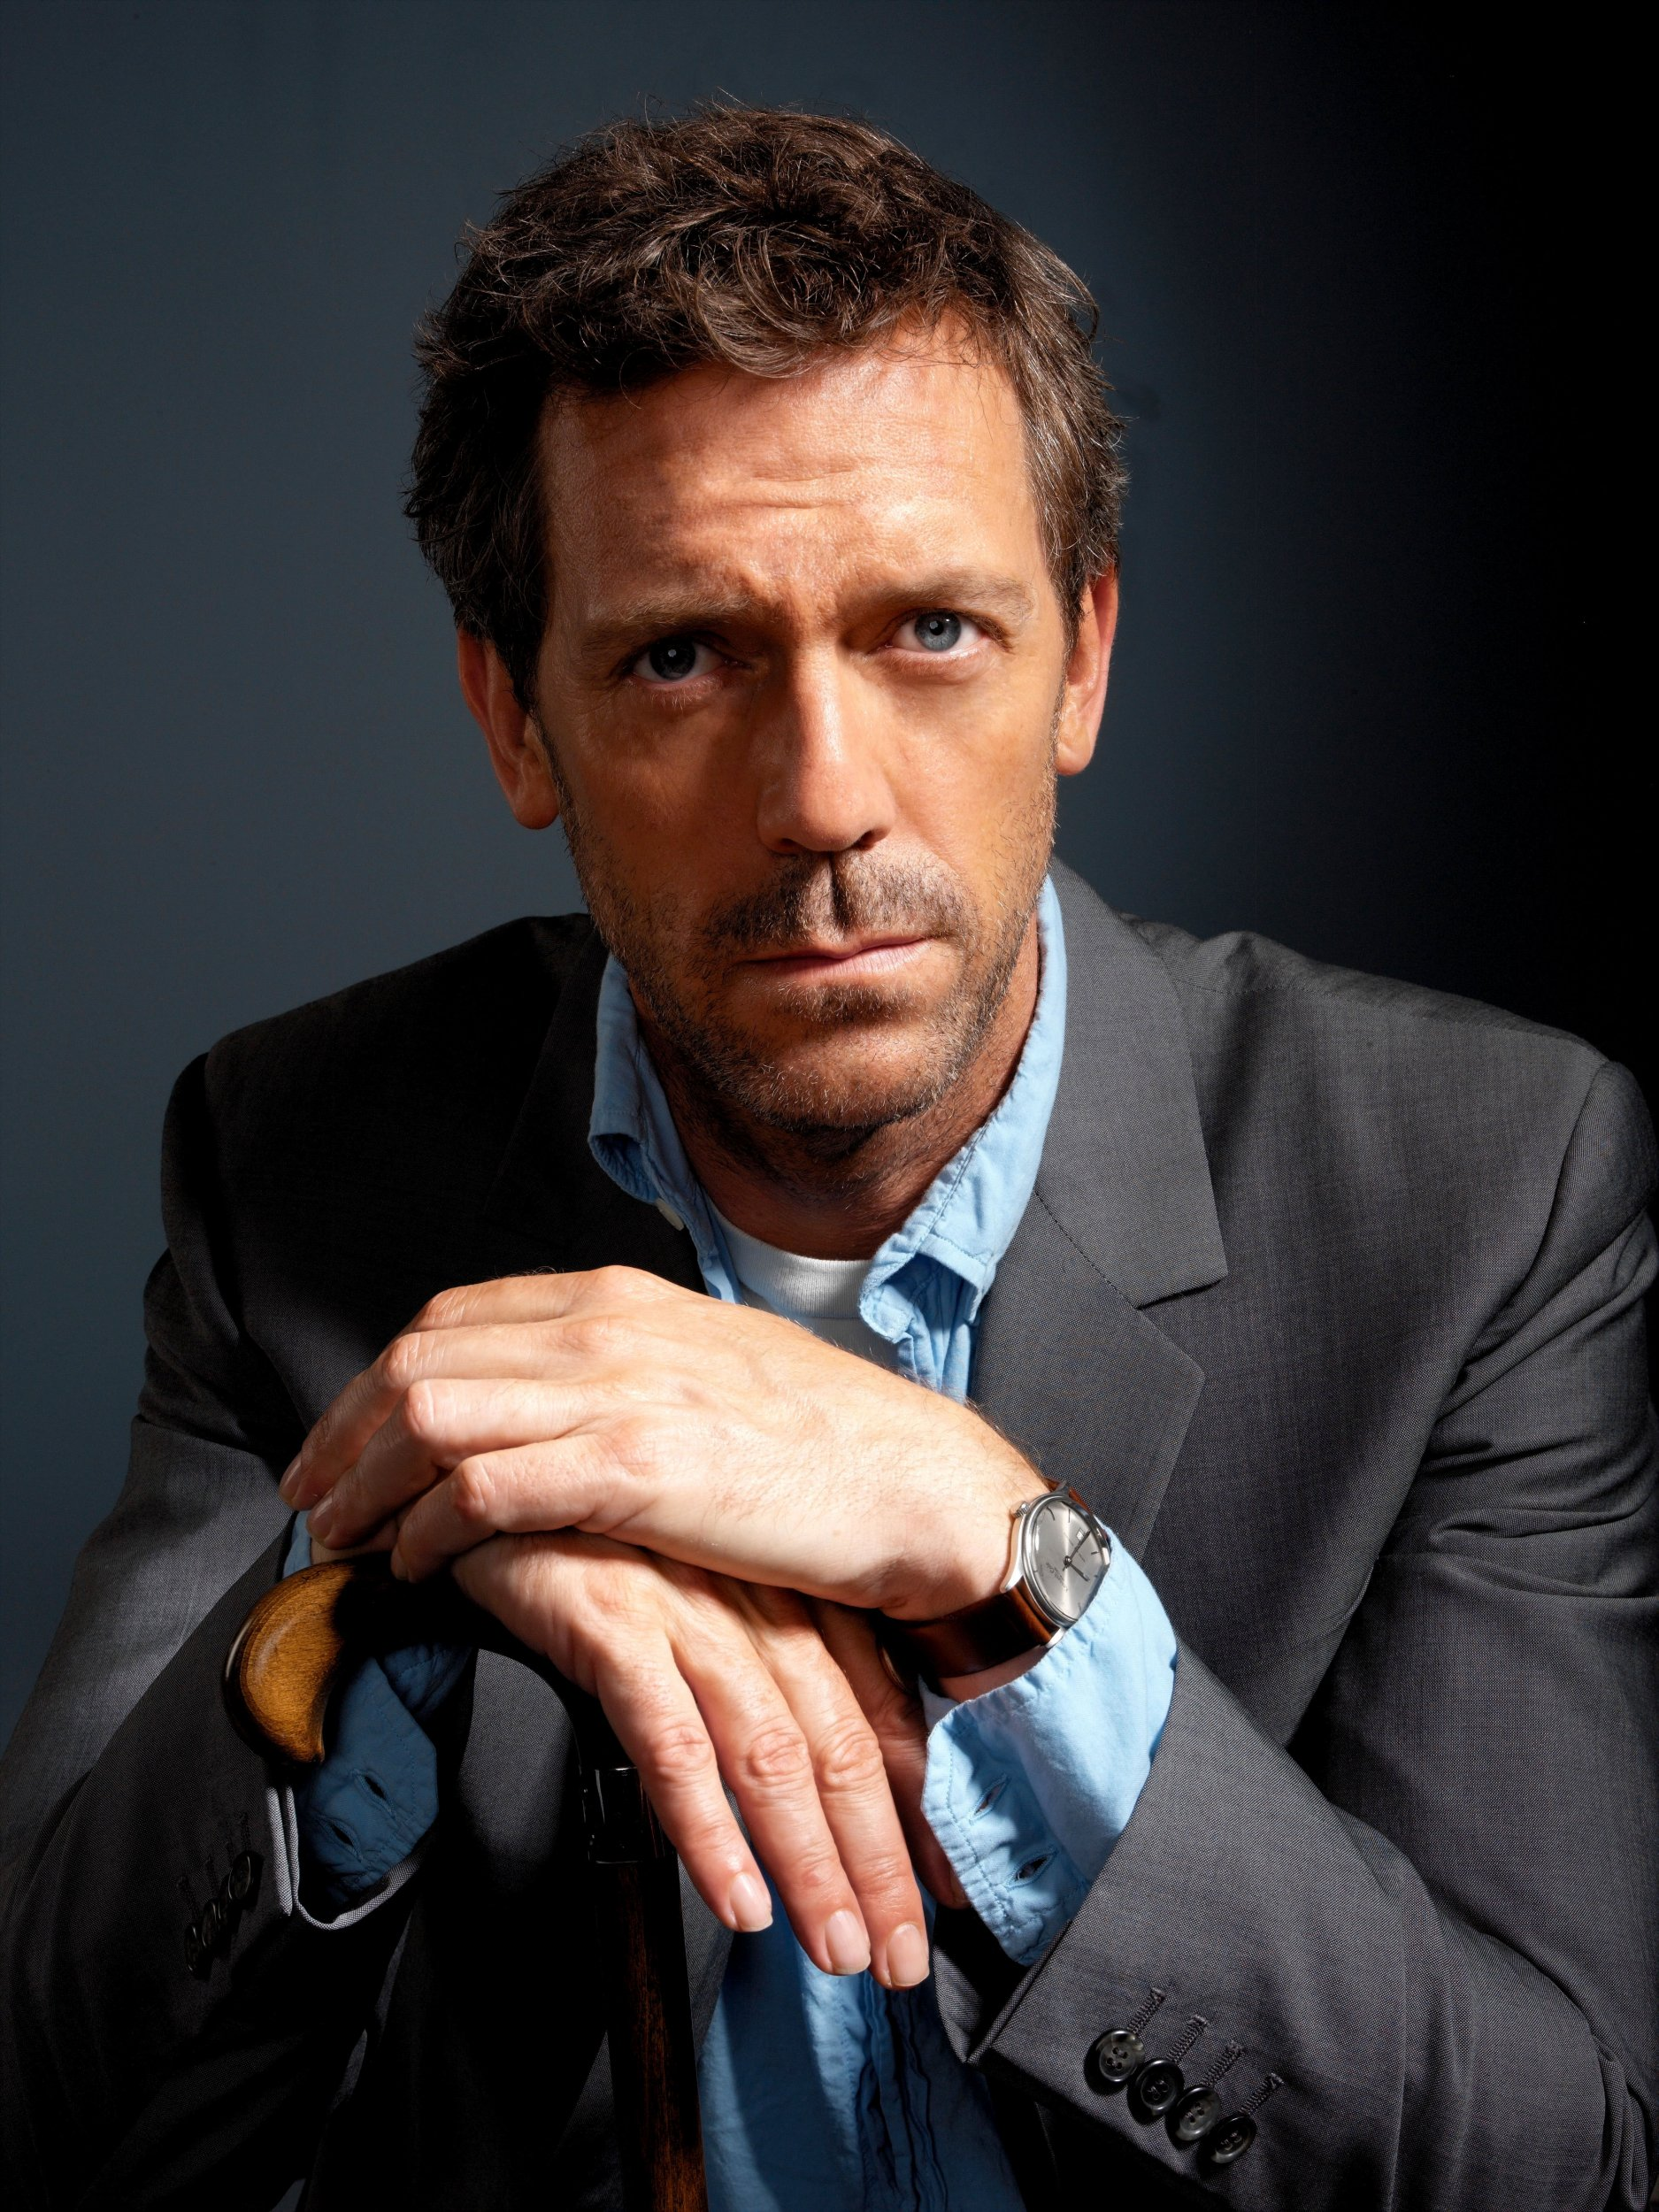 dr gregory house Hugh laurie played dr gregory house md, a world-renowned doctor known for his unique genius ability to diagnose complex medical cases that no other doctor could solve.